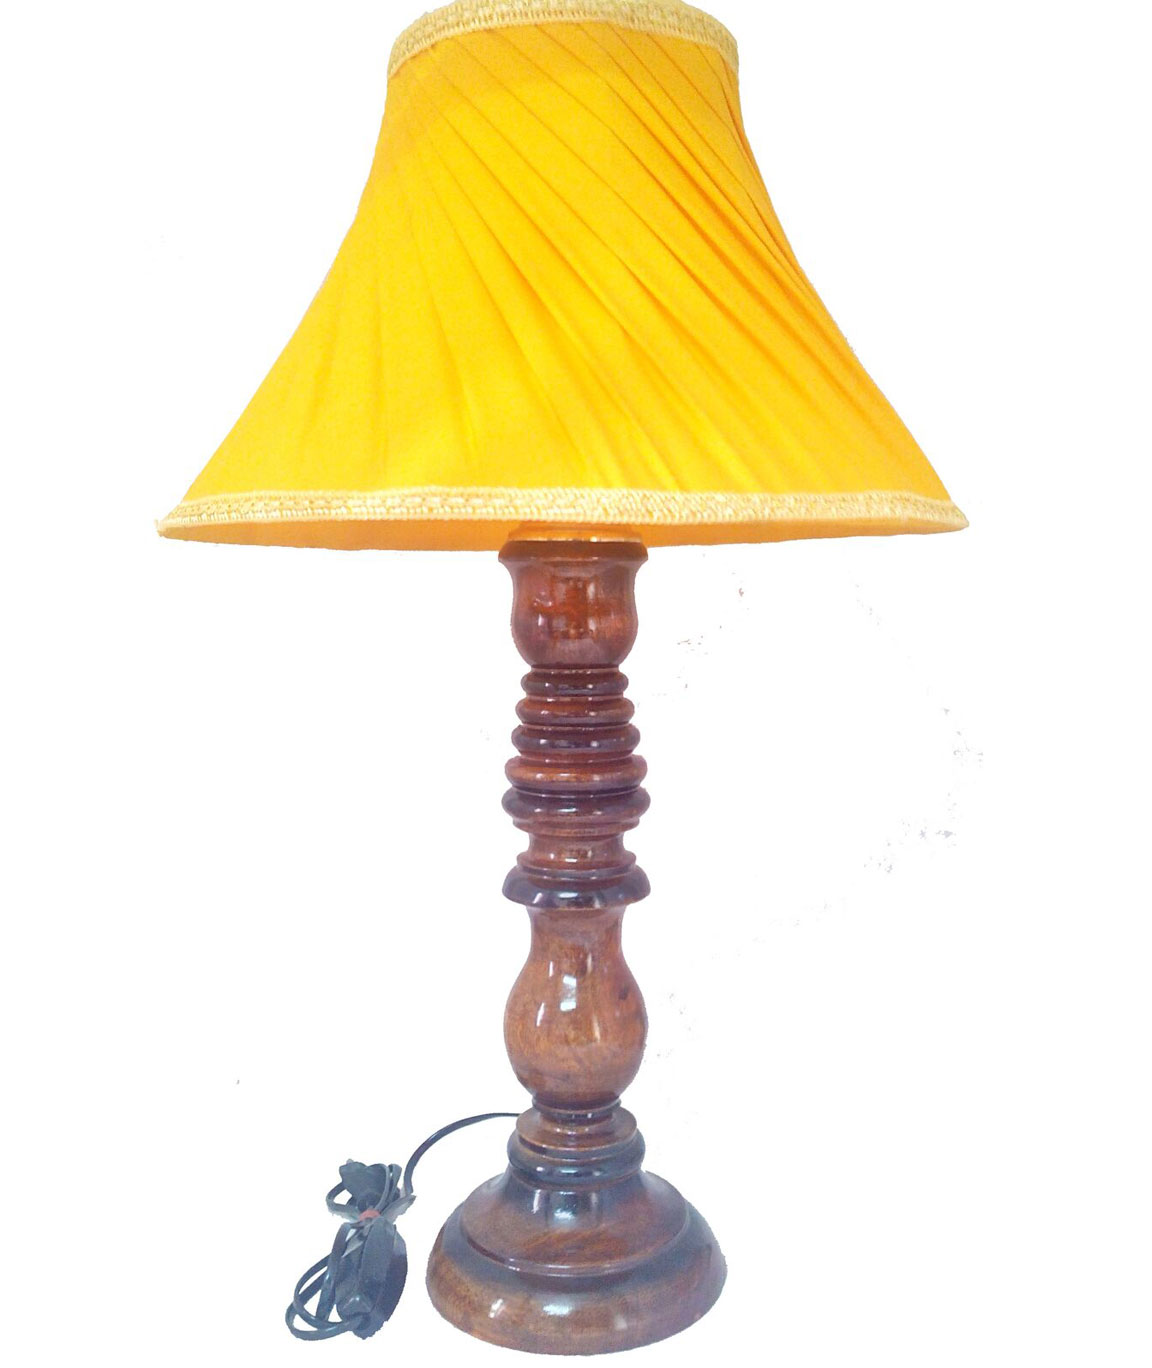 RDC Wooden Designer Table Lamp with 12 Inches Round Slanting Pleated Yellow with Golden Lace Border Lamp Shade